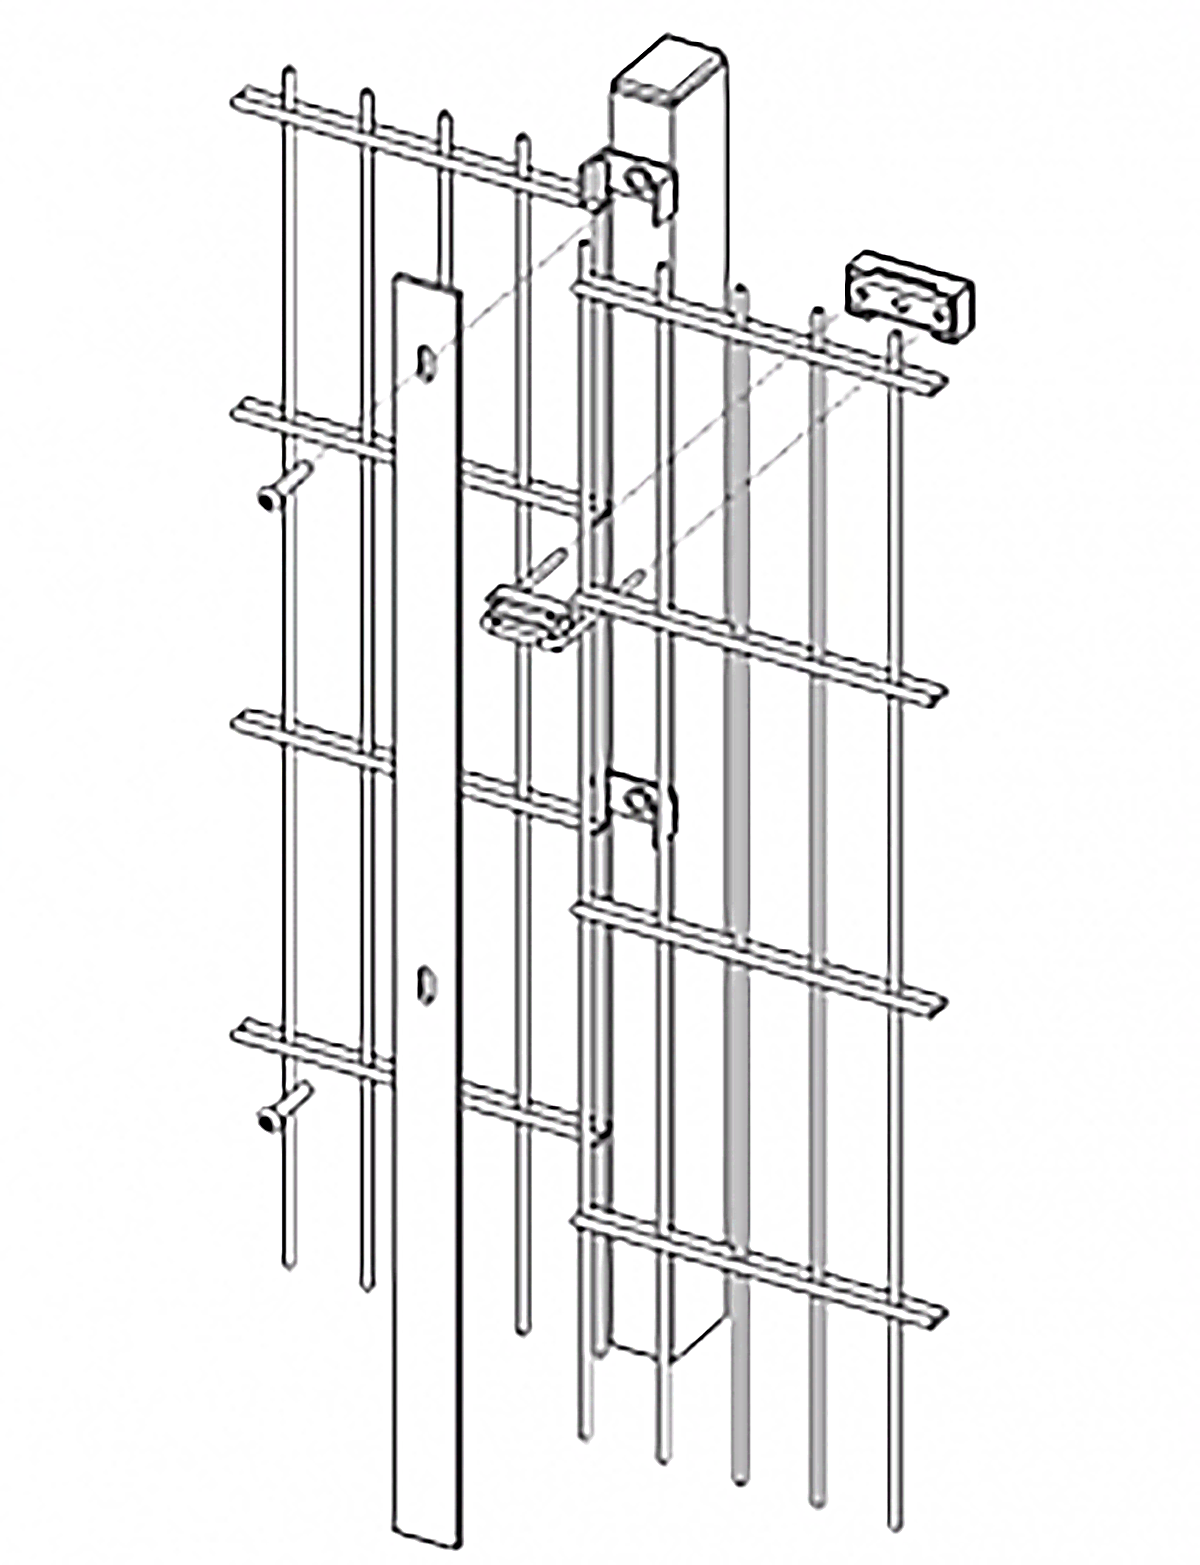 An illustration of the Heras Pallas Xtra Fence